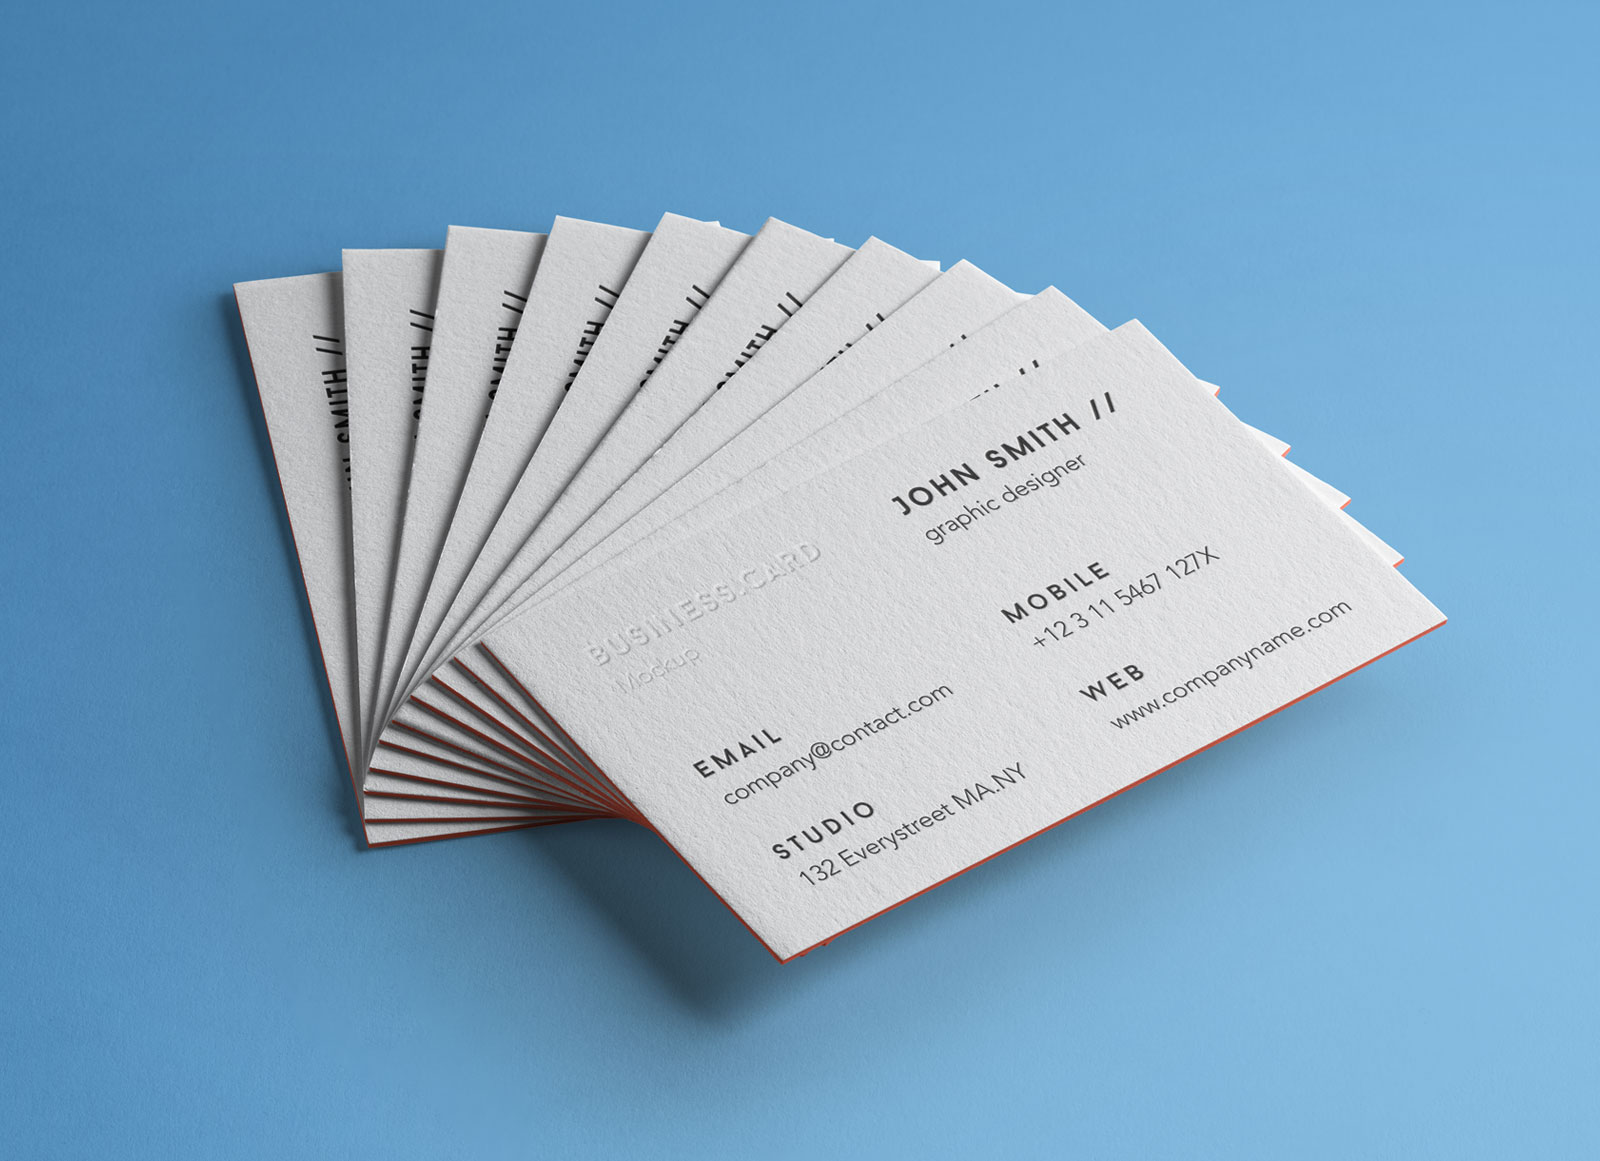 Free letterpressed business card mockup with colored edges good free letterpressed business card mockup with colored edges colourmoves